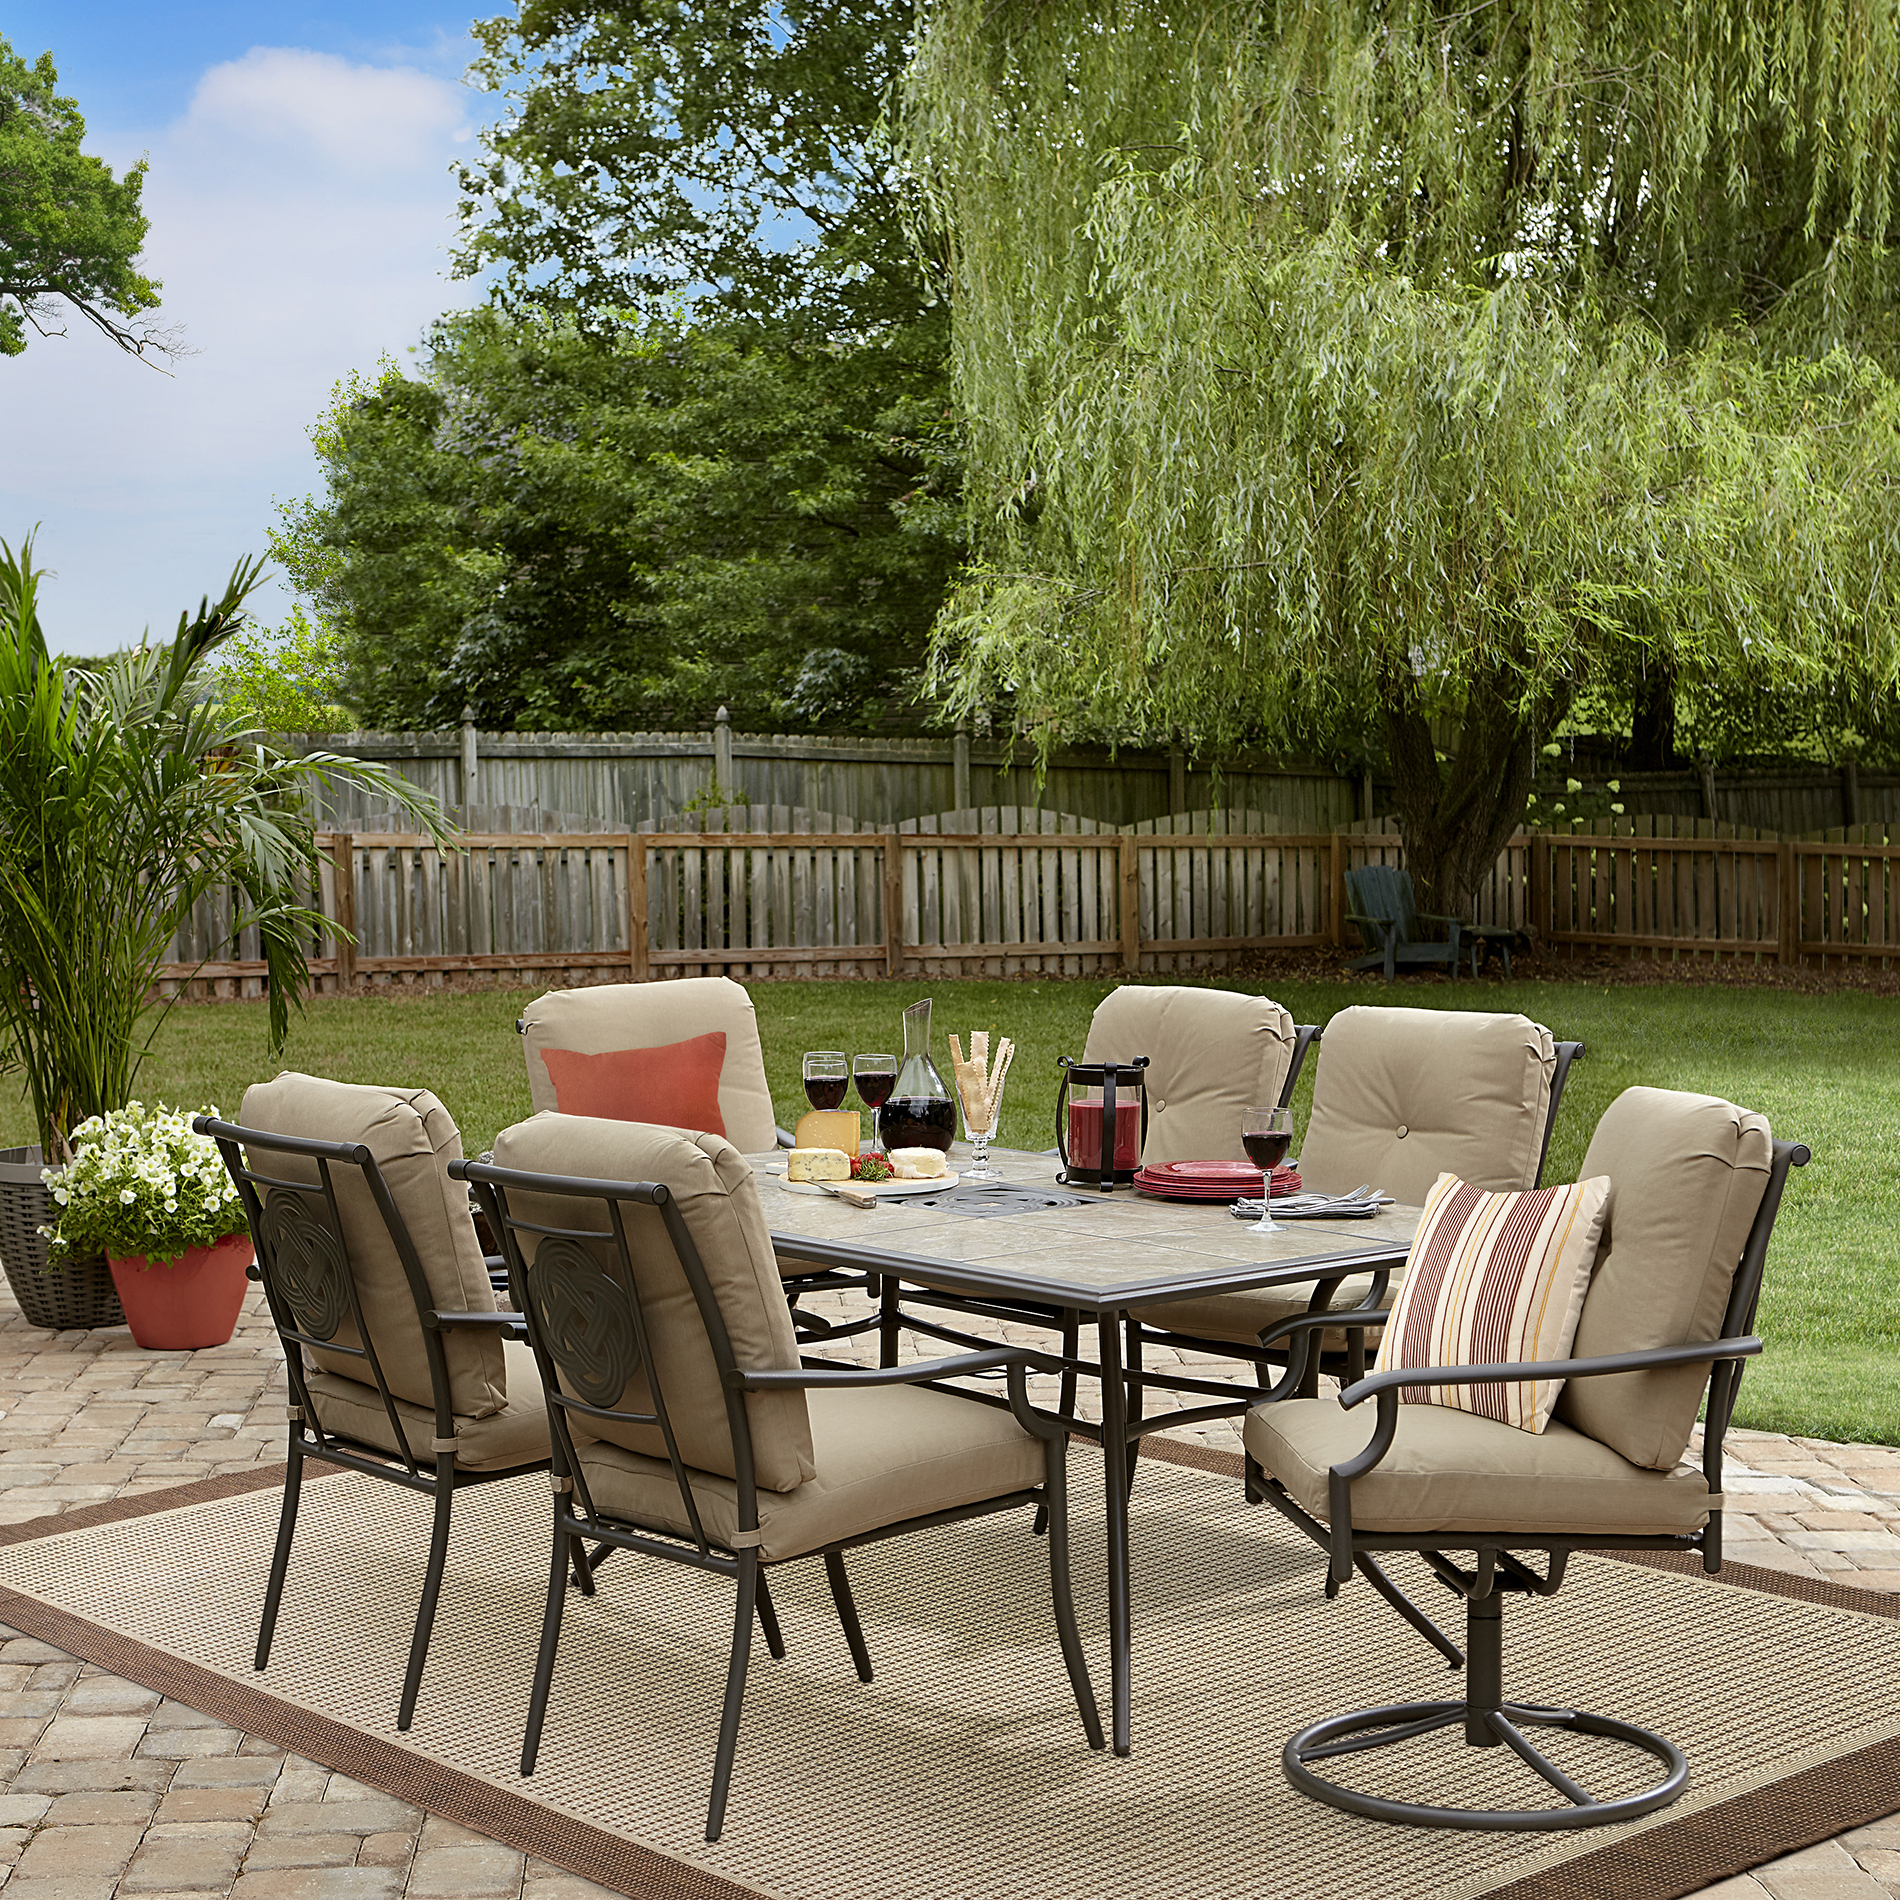 Garden Oasis Brookston 7-piece Dining Set - Stone